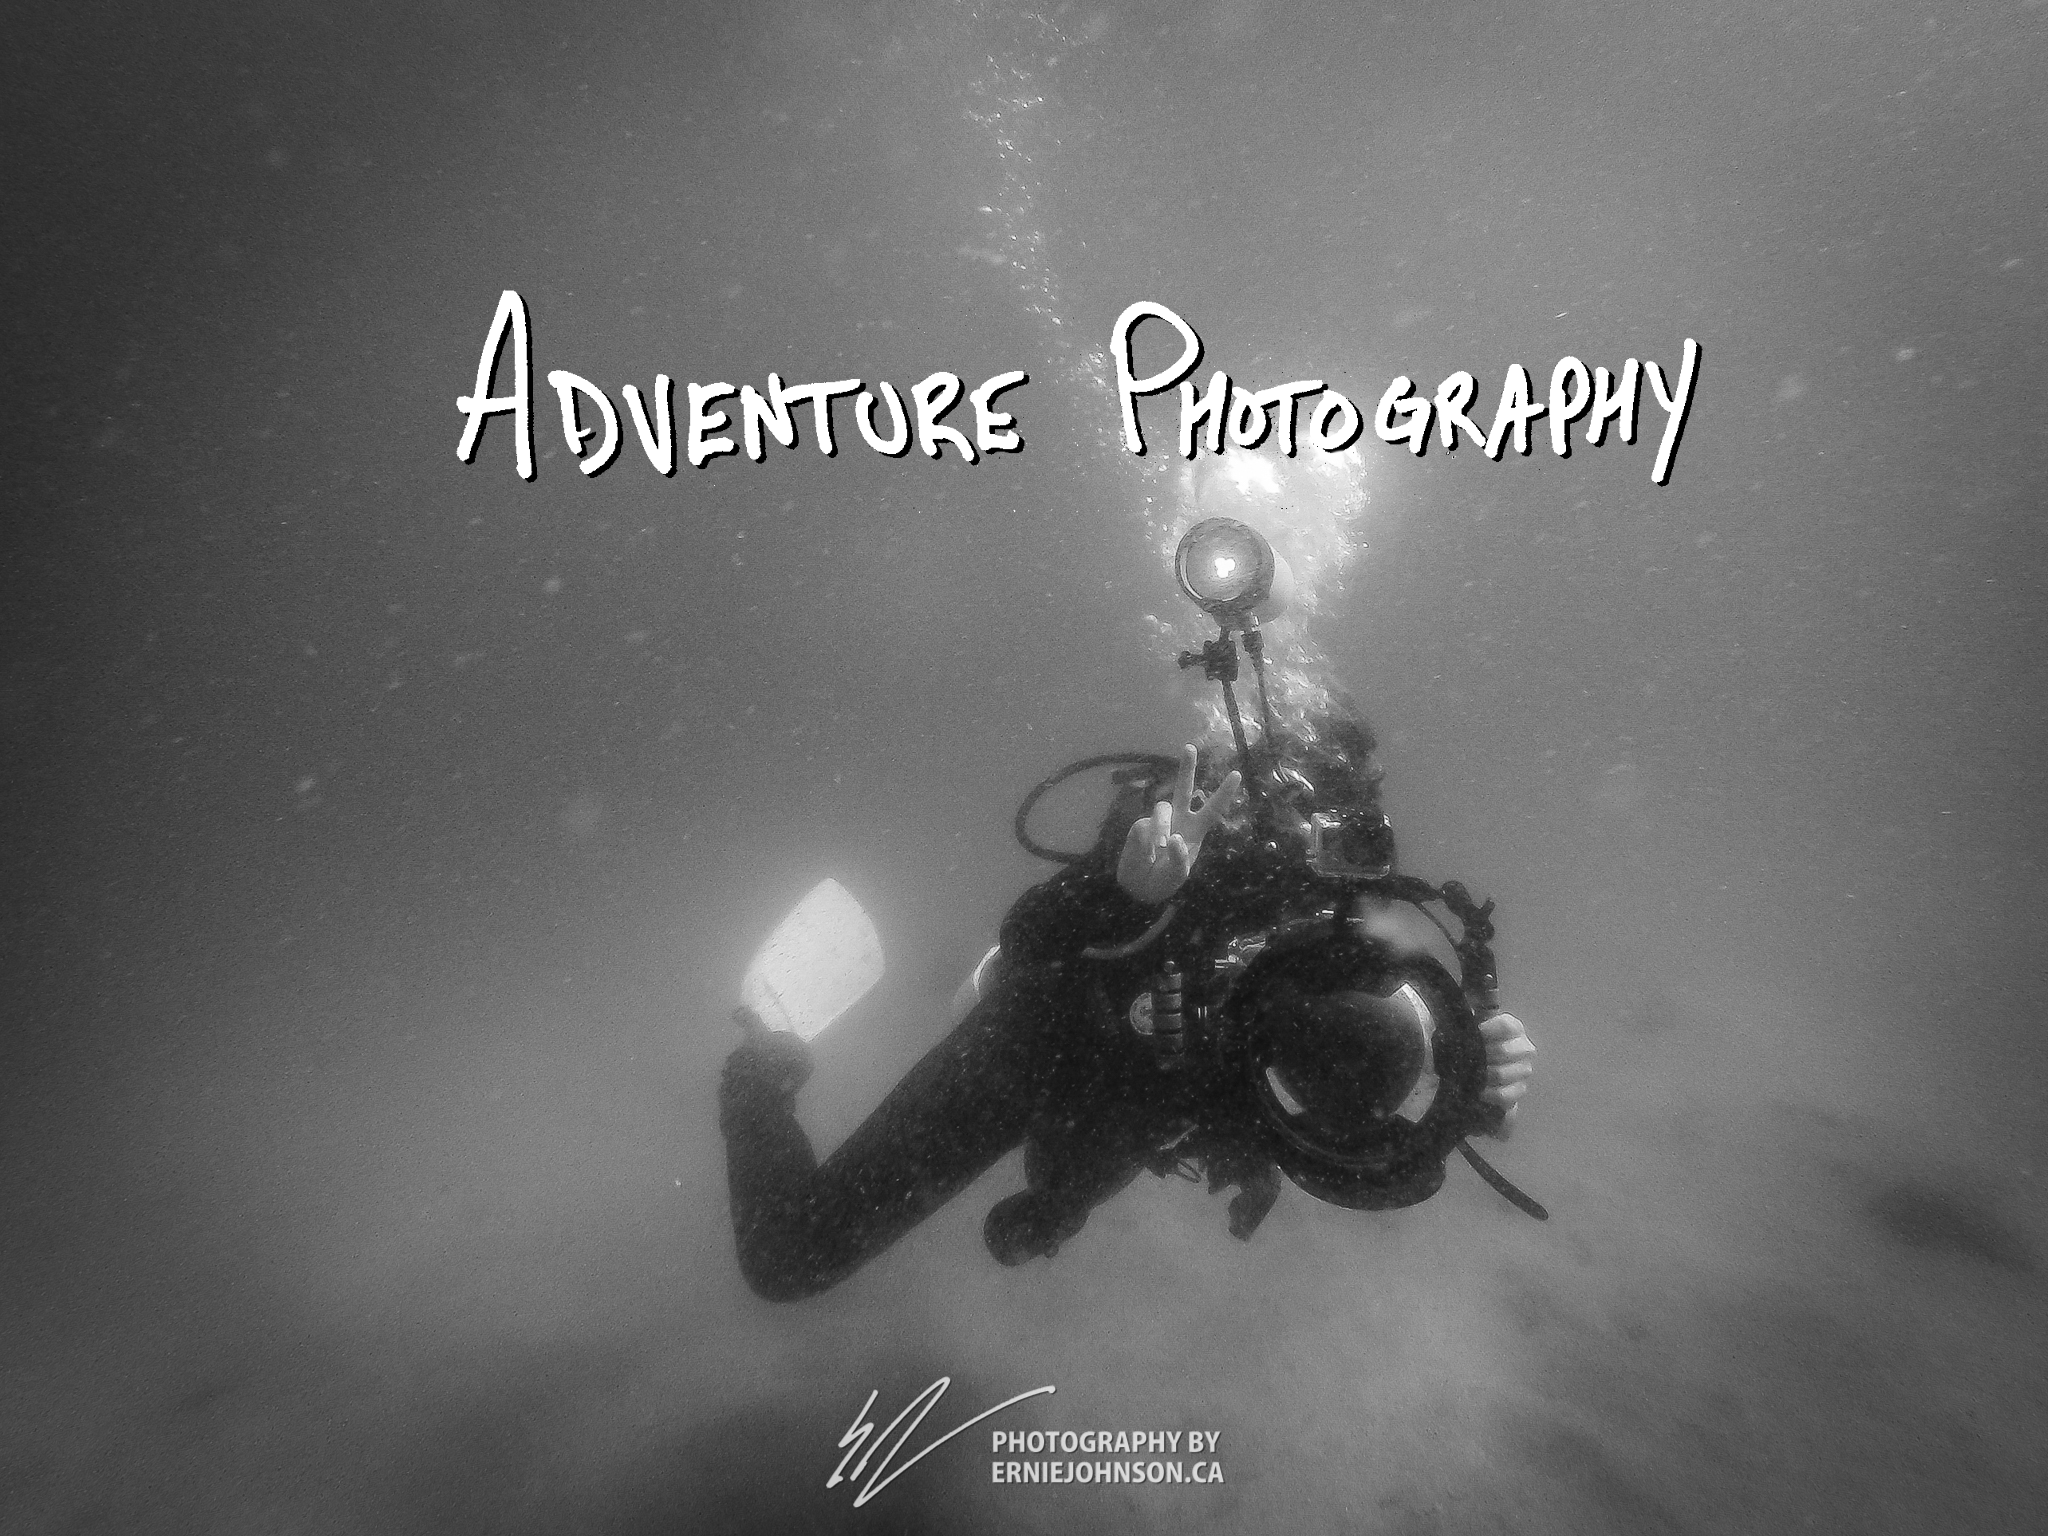 Adventure Photography - underwater in this case